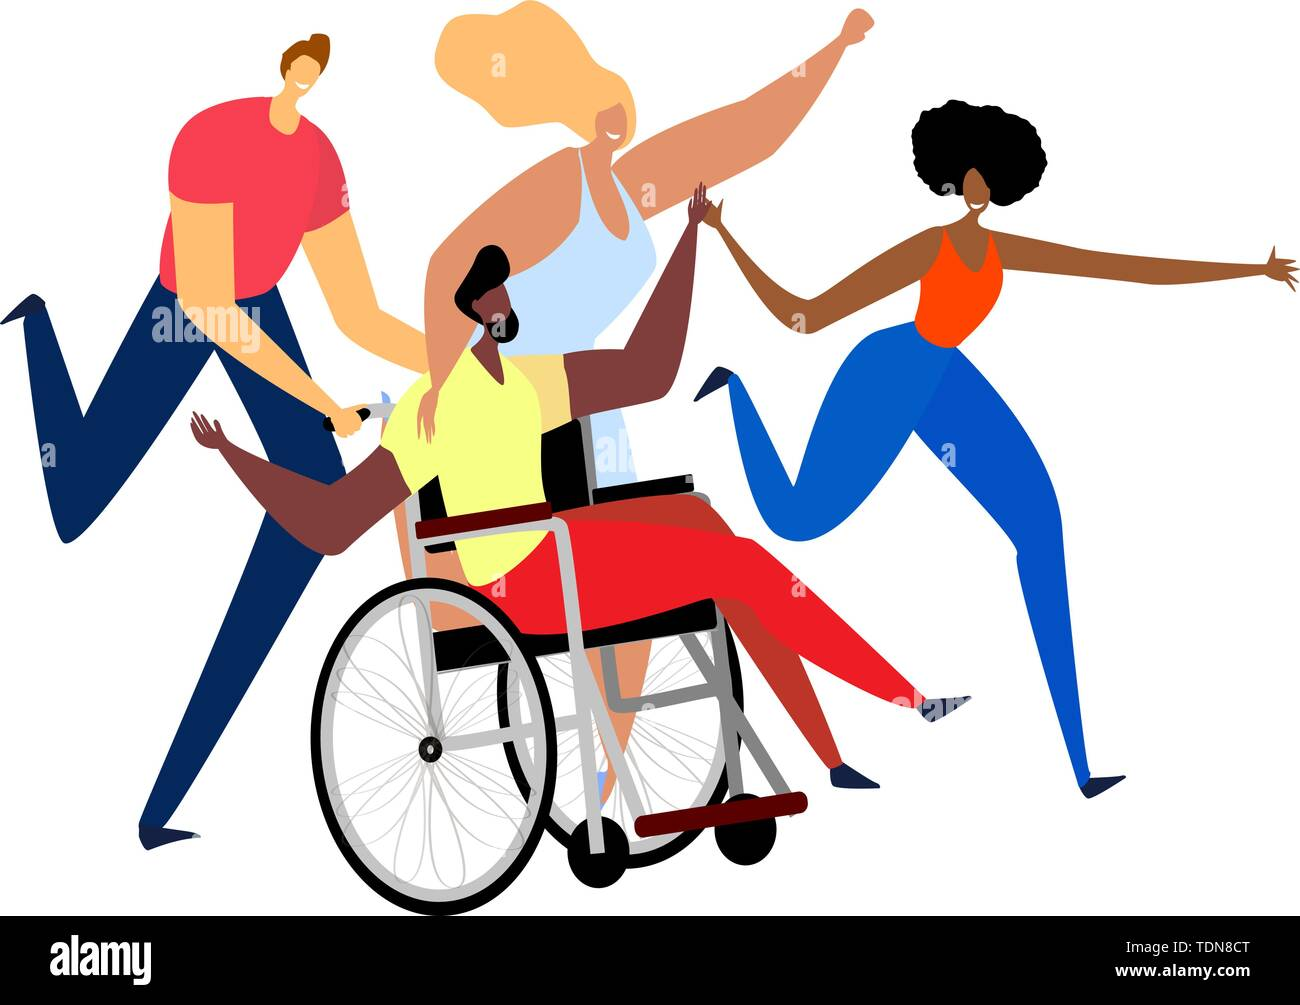 A group of different happy friends having fun with their handicapped friend. Vector falt illustration - Stock Image